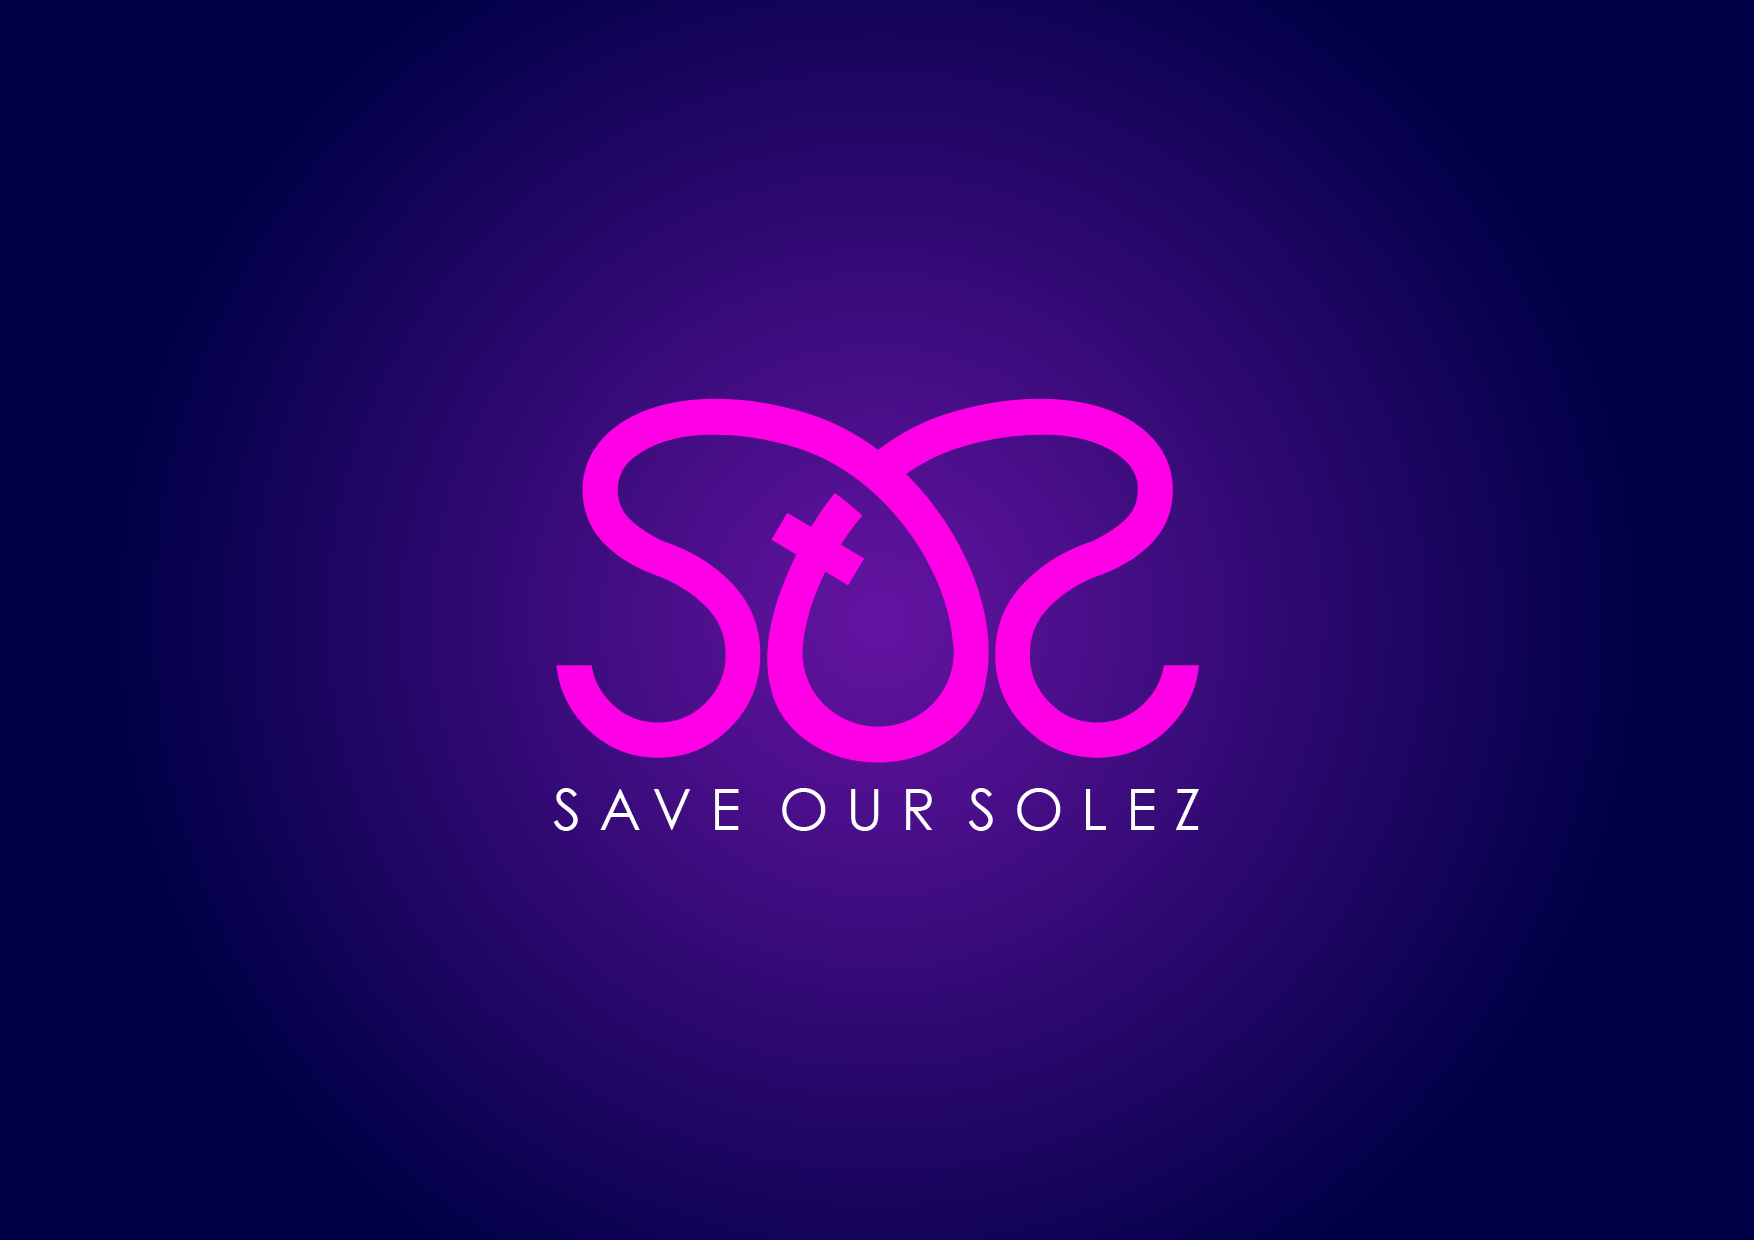 Logo Design by bulb - Entry No. 33 in the Logo Design Contest Captivating Logo Design for Save Our Solez.